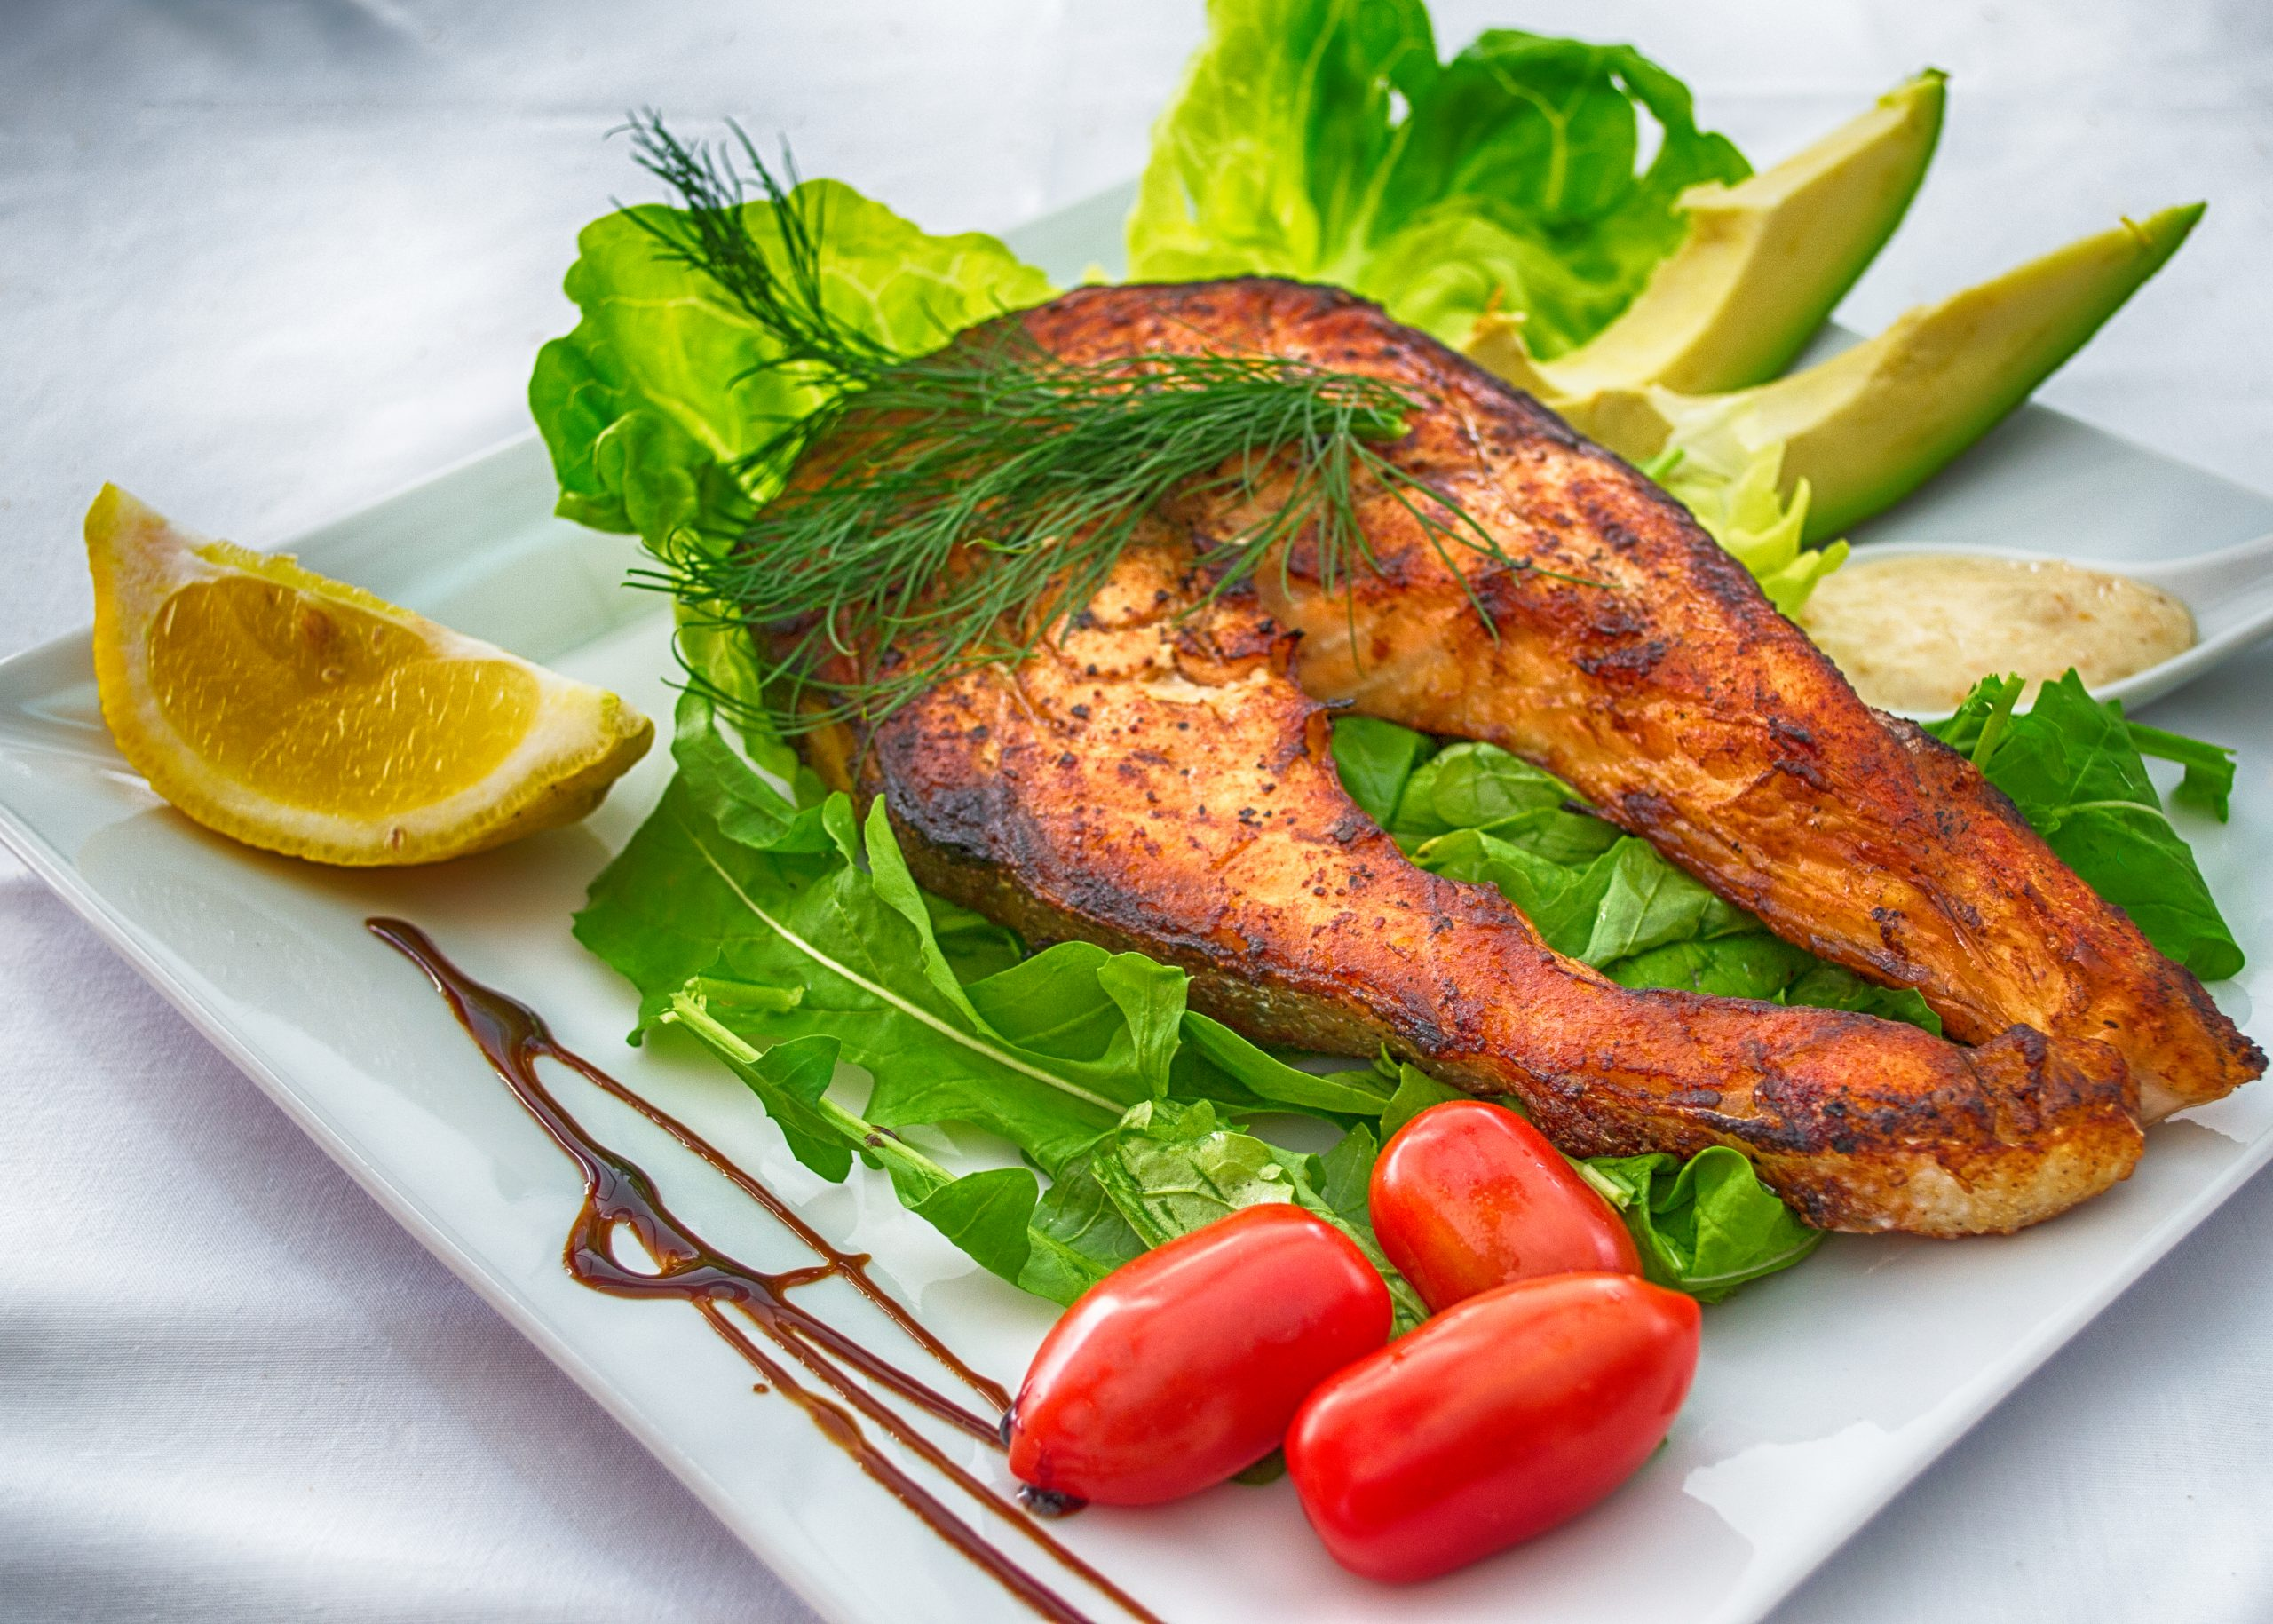 Fish and vegetables; hyperthyroidism and hypothyroidism.